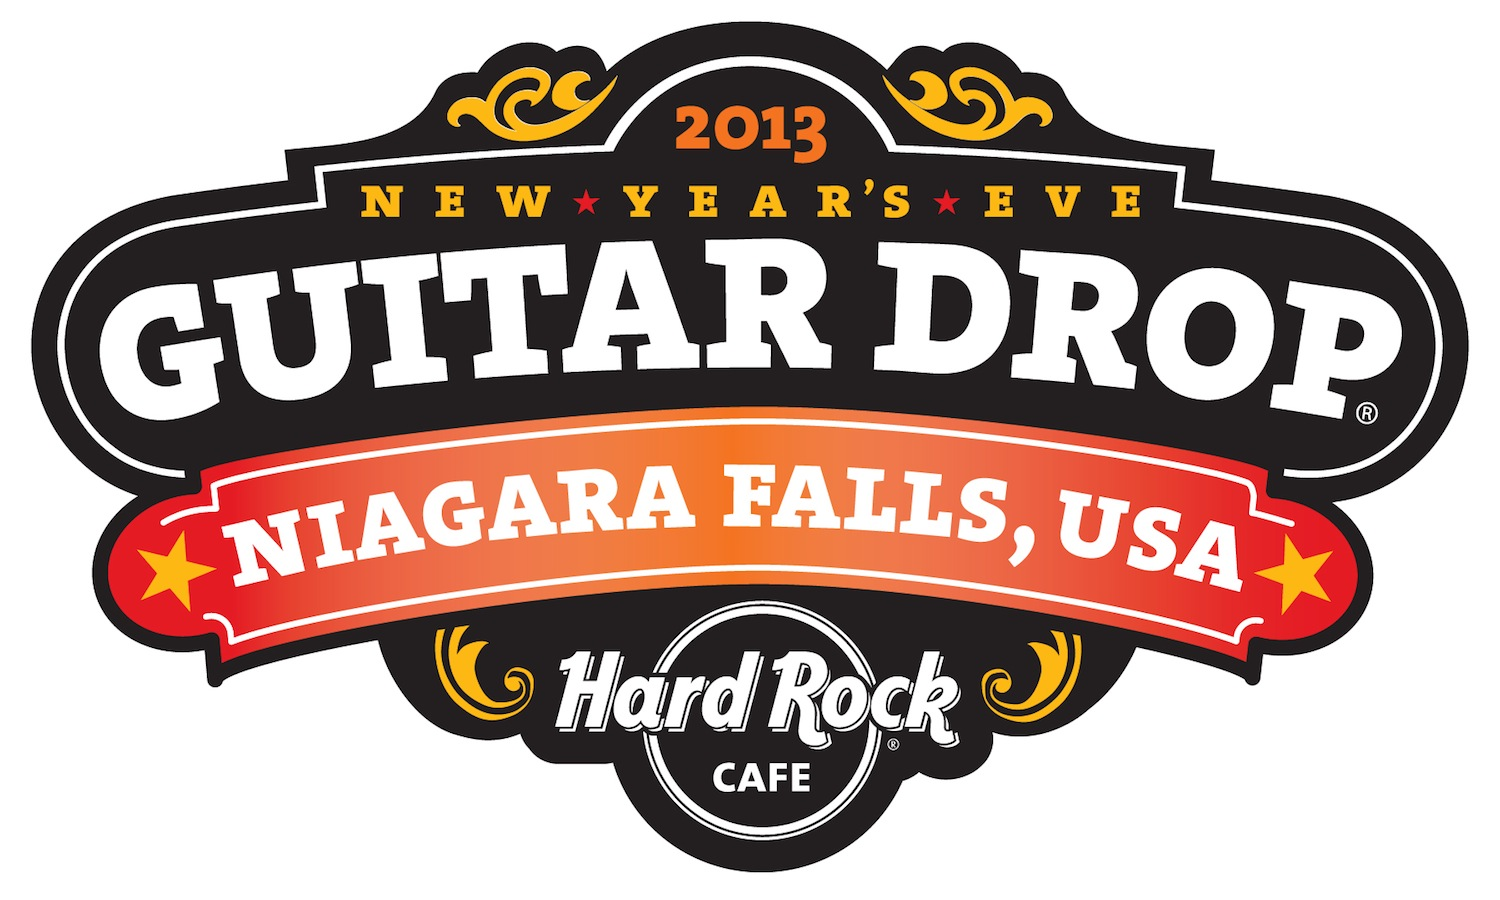 The Hard Rock Café, Niagara Falls USA, 4th annual New Year's Eve Guitar Drop